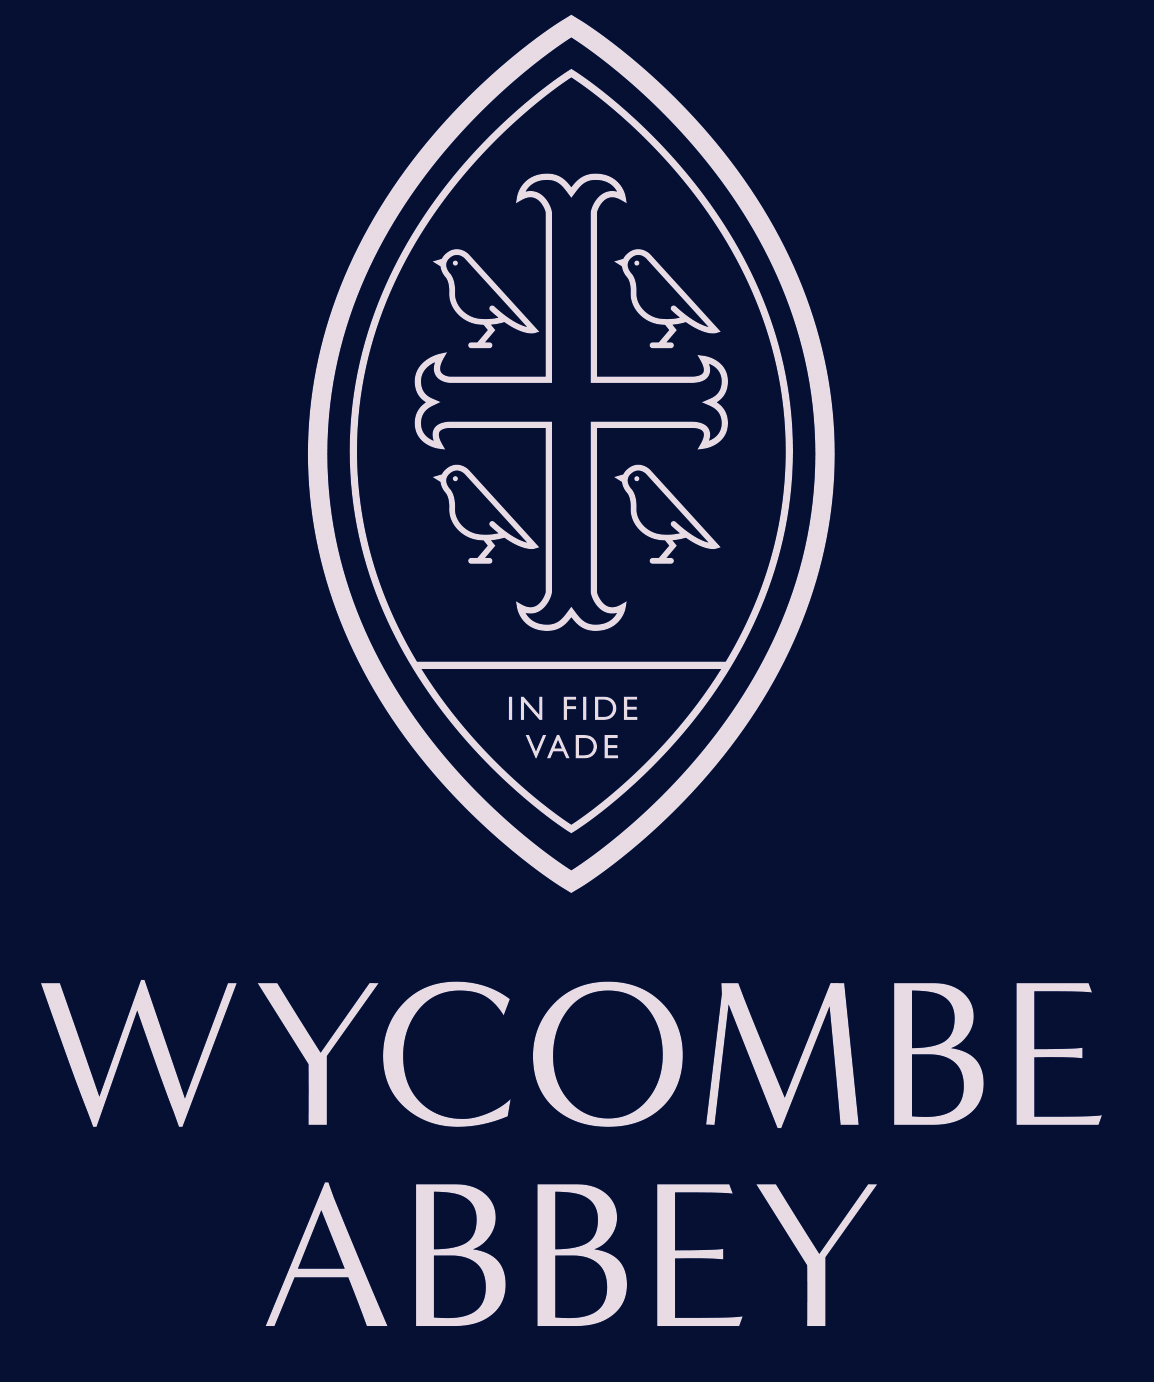 Wycombe Abbey